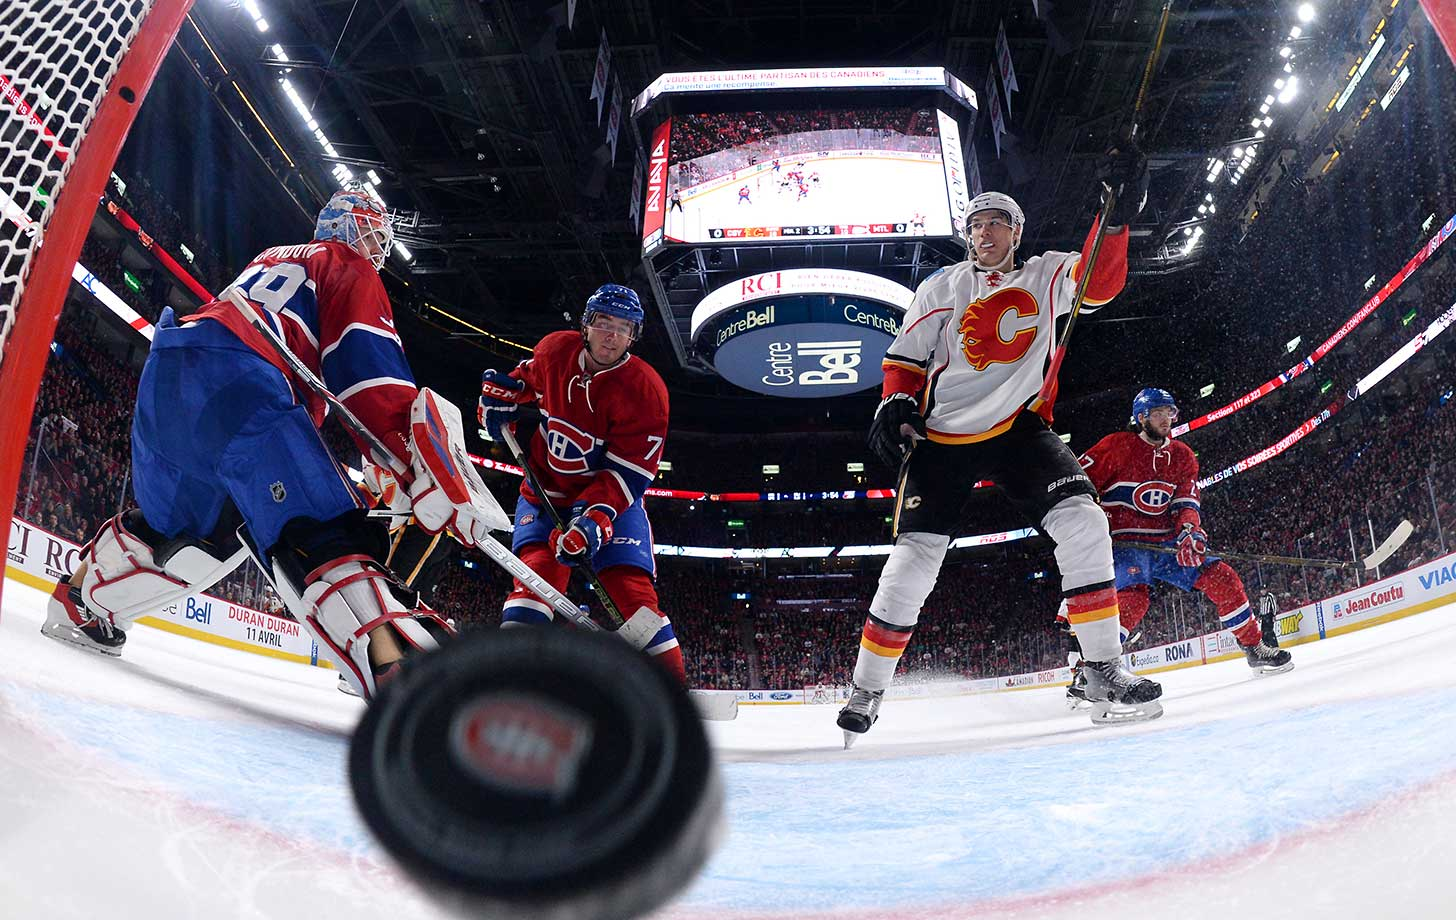 Joe Colborne of the Calgary Flames scores a goal against the Montreal Canadiens.